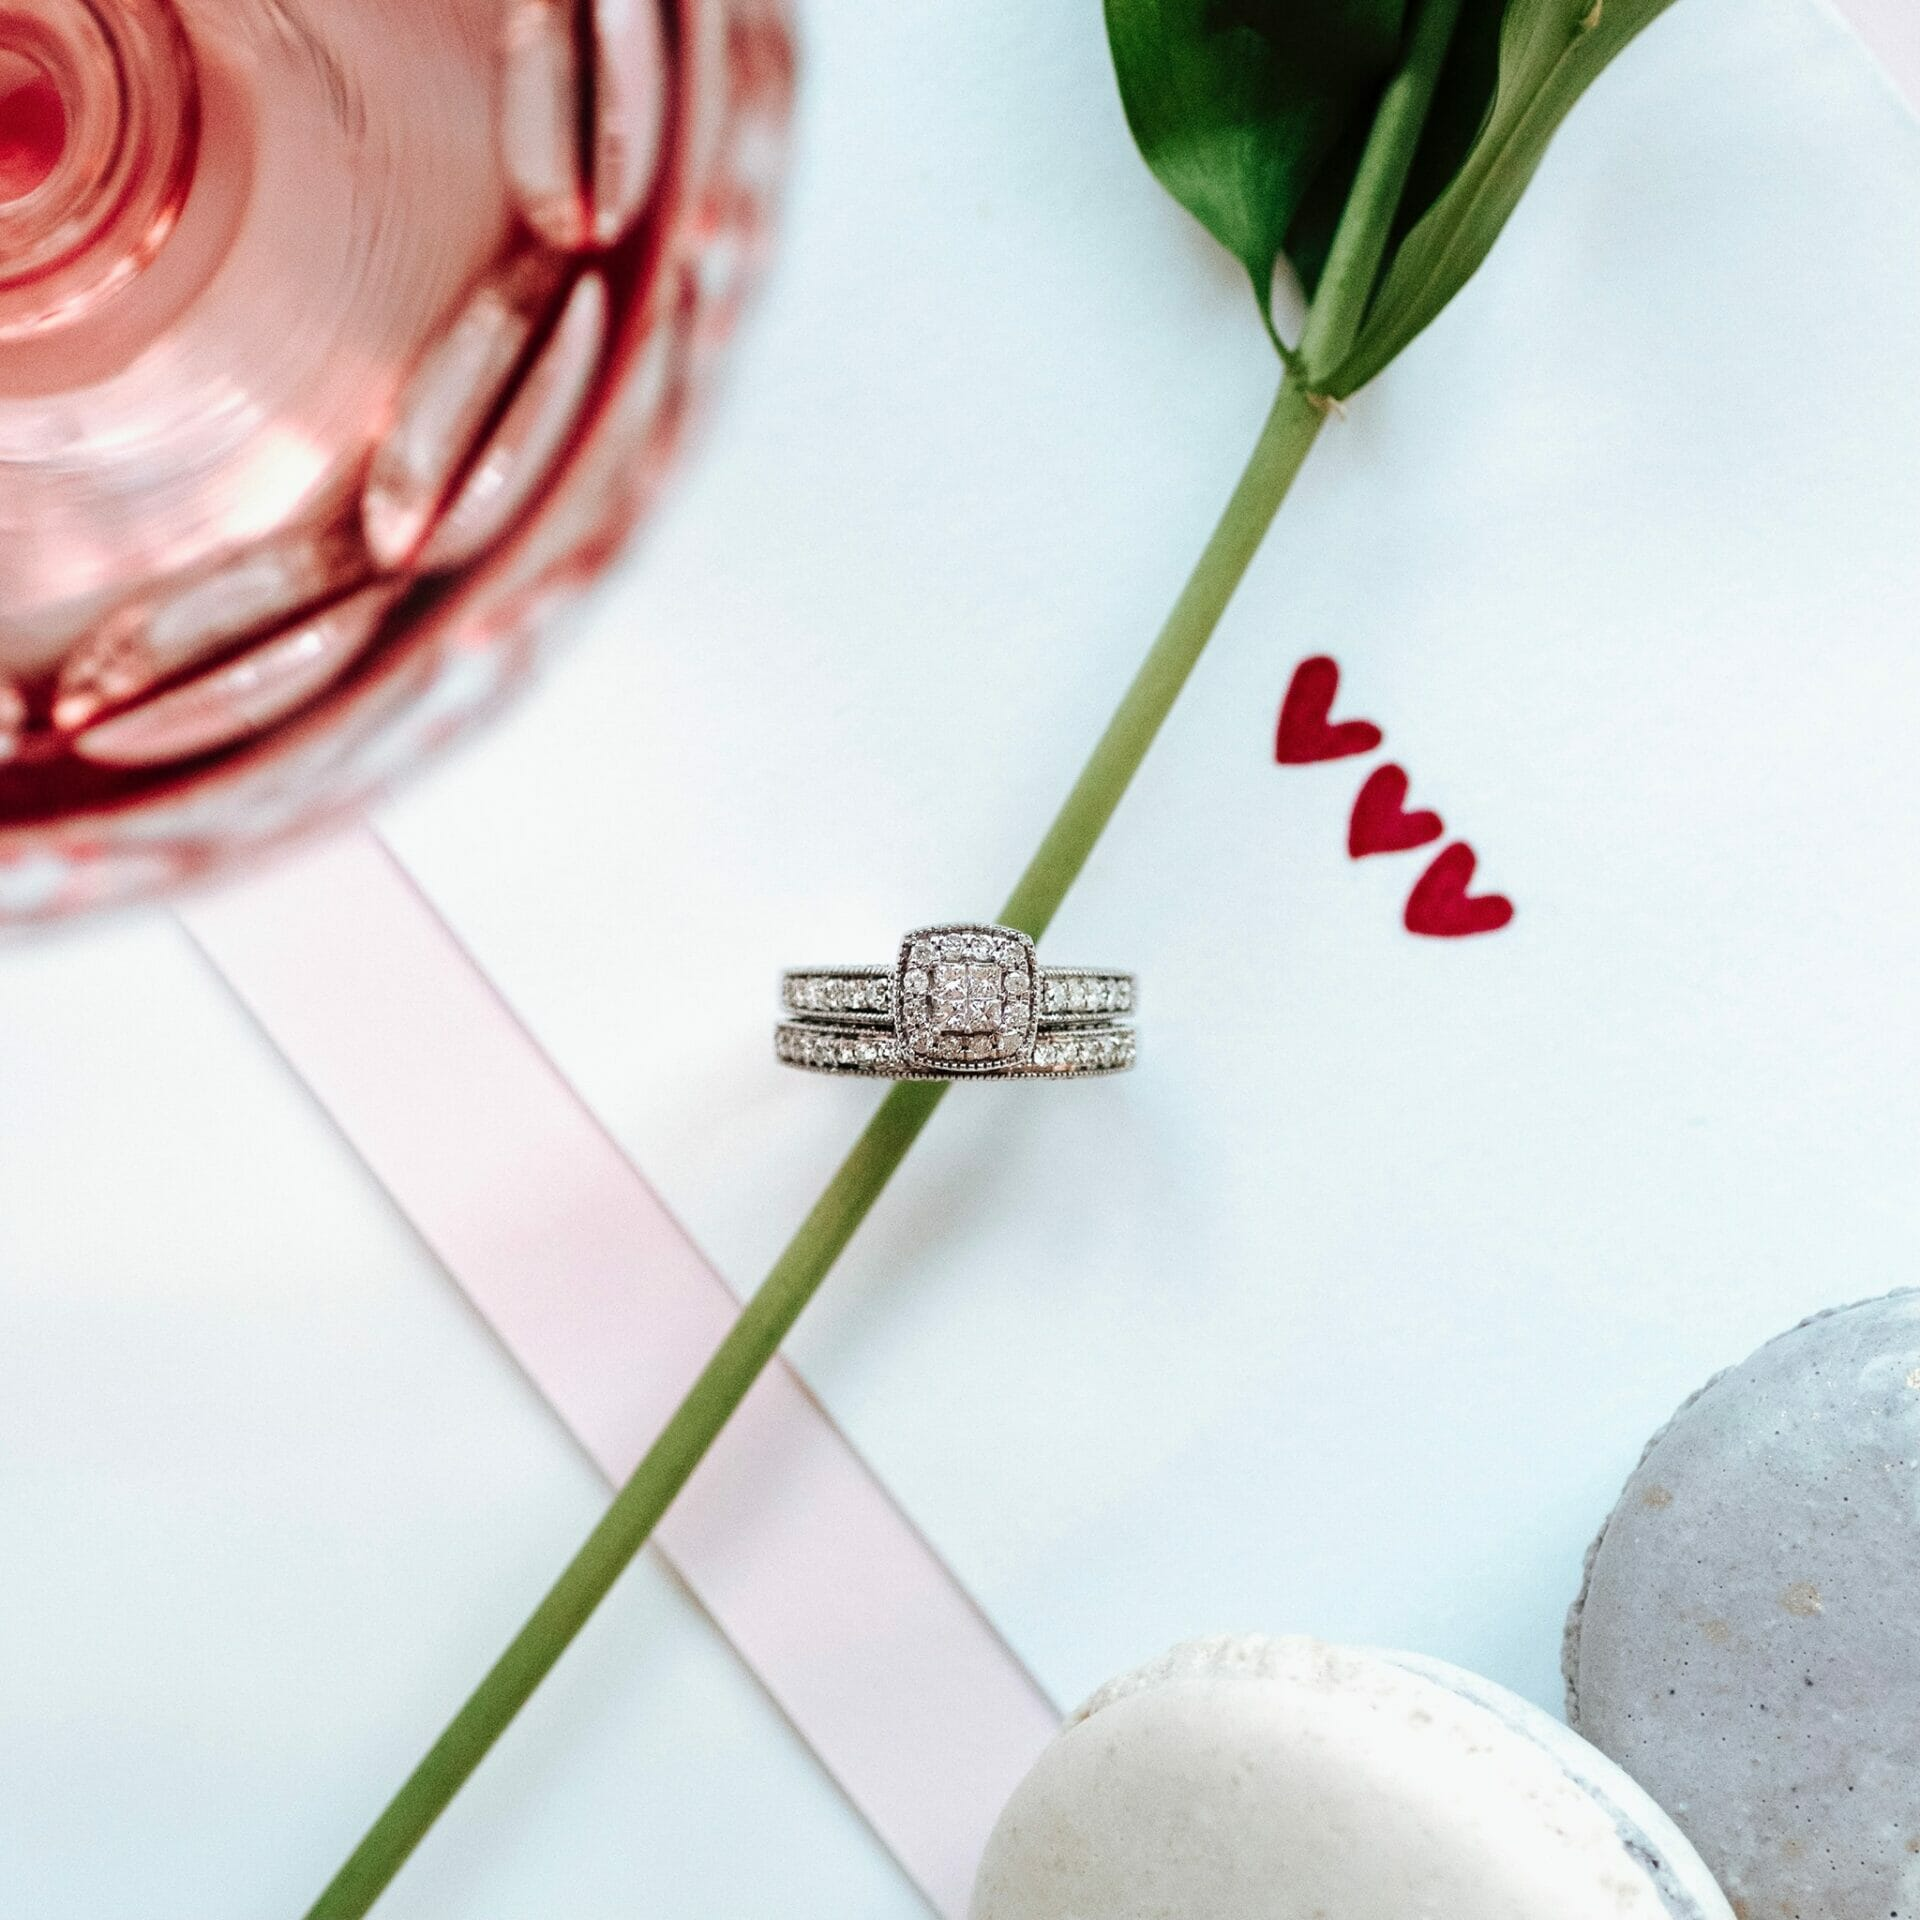 https://rmhbc.ca/wp-content/uploads/2021/01/celebrate-love-paris-jewellers.jpg